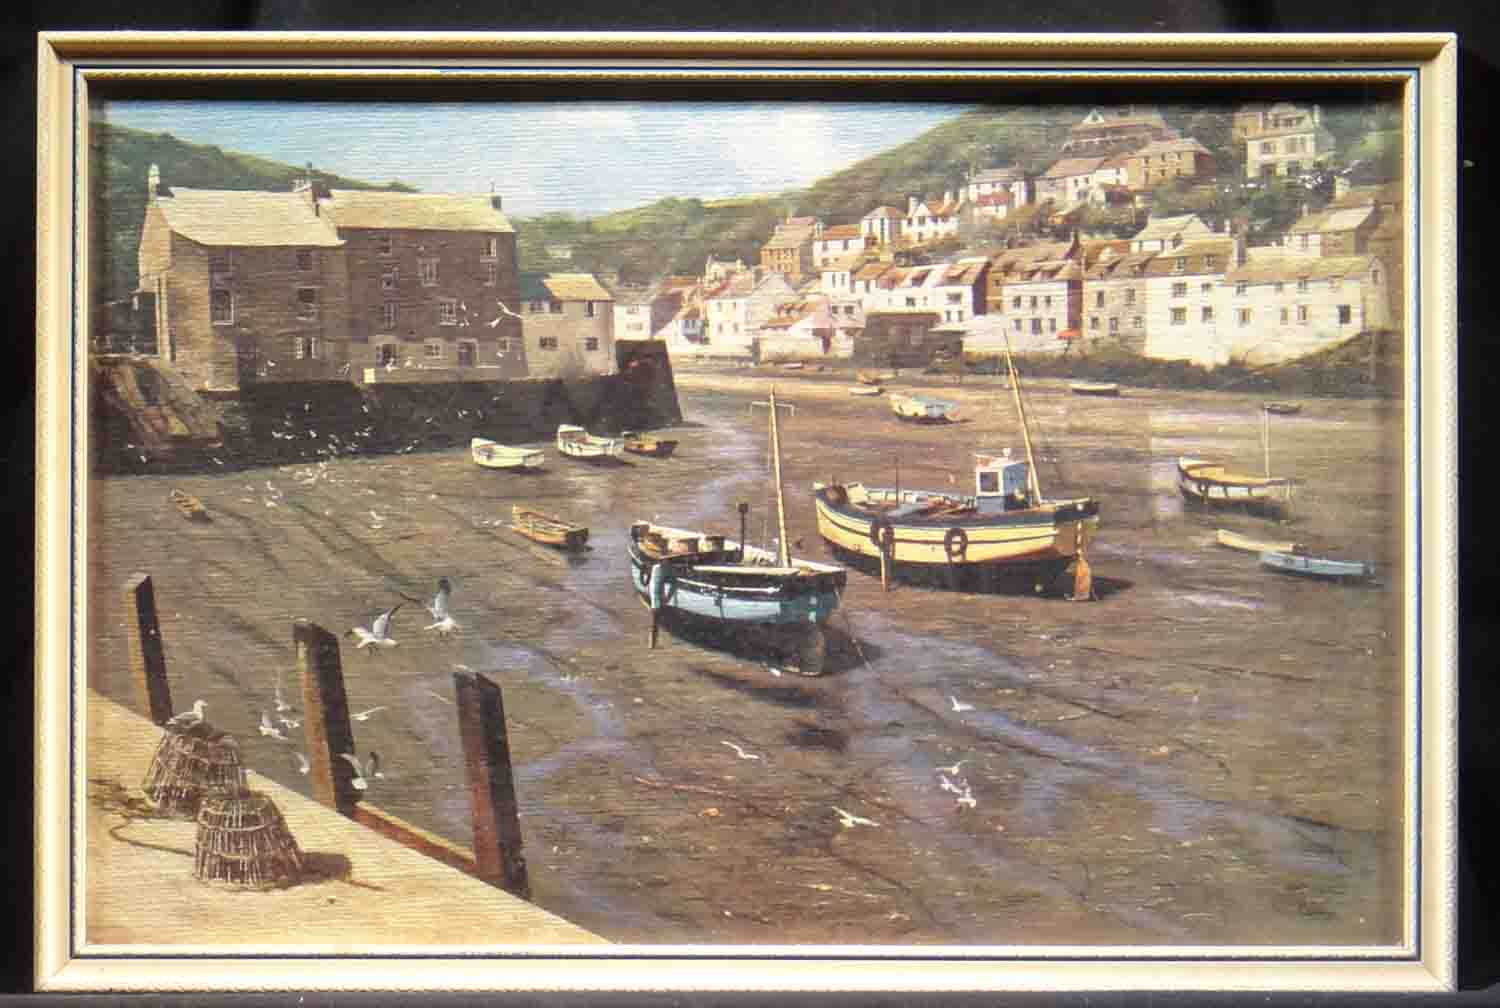 David Shepherd polperro, harbour, cornwall, England print mini